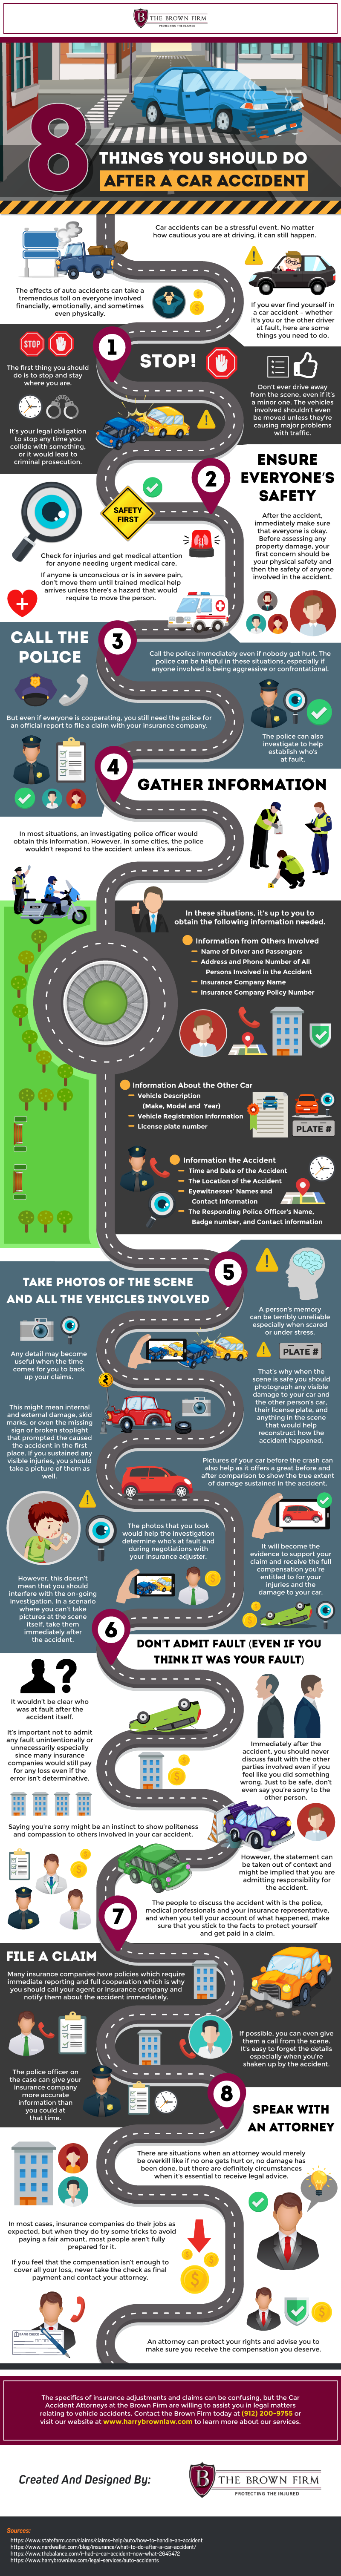 What to Do After a Car Accident: The 8-Step Guide to Avoid Problems - Infographic